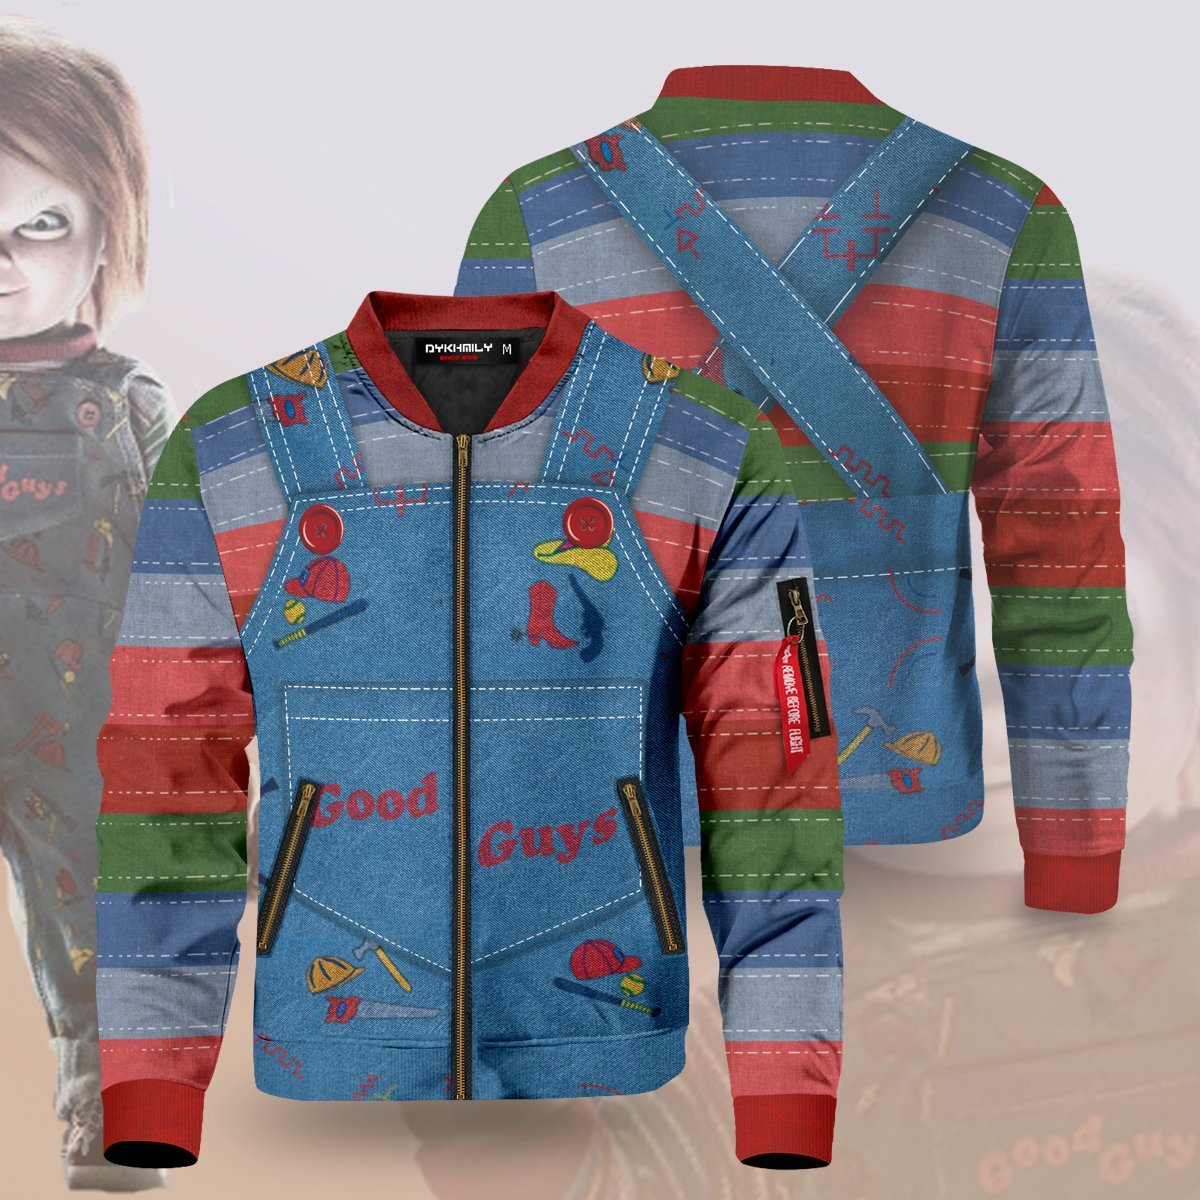 Chucky The Doll Bomber Jacket S